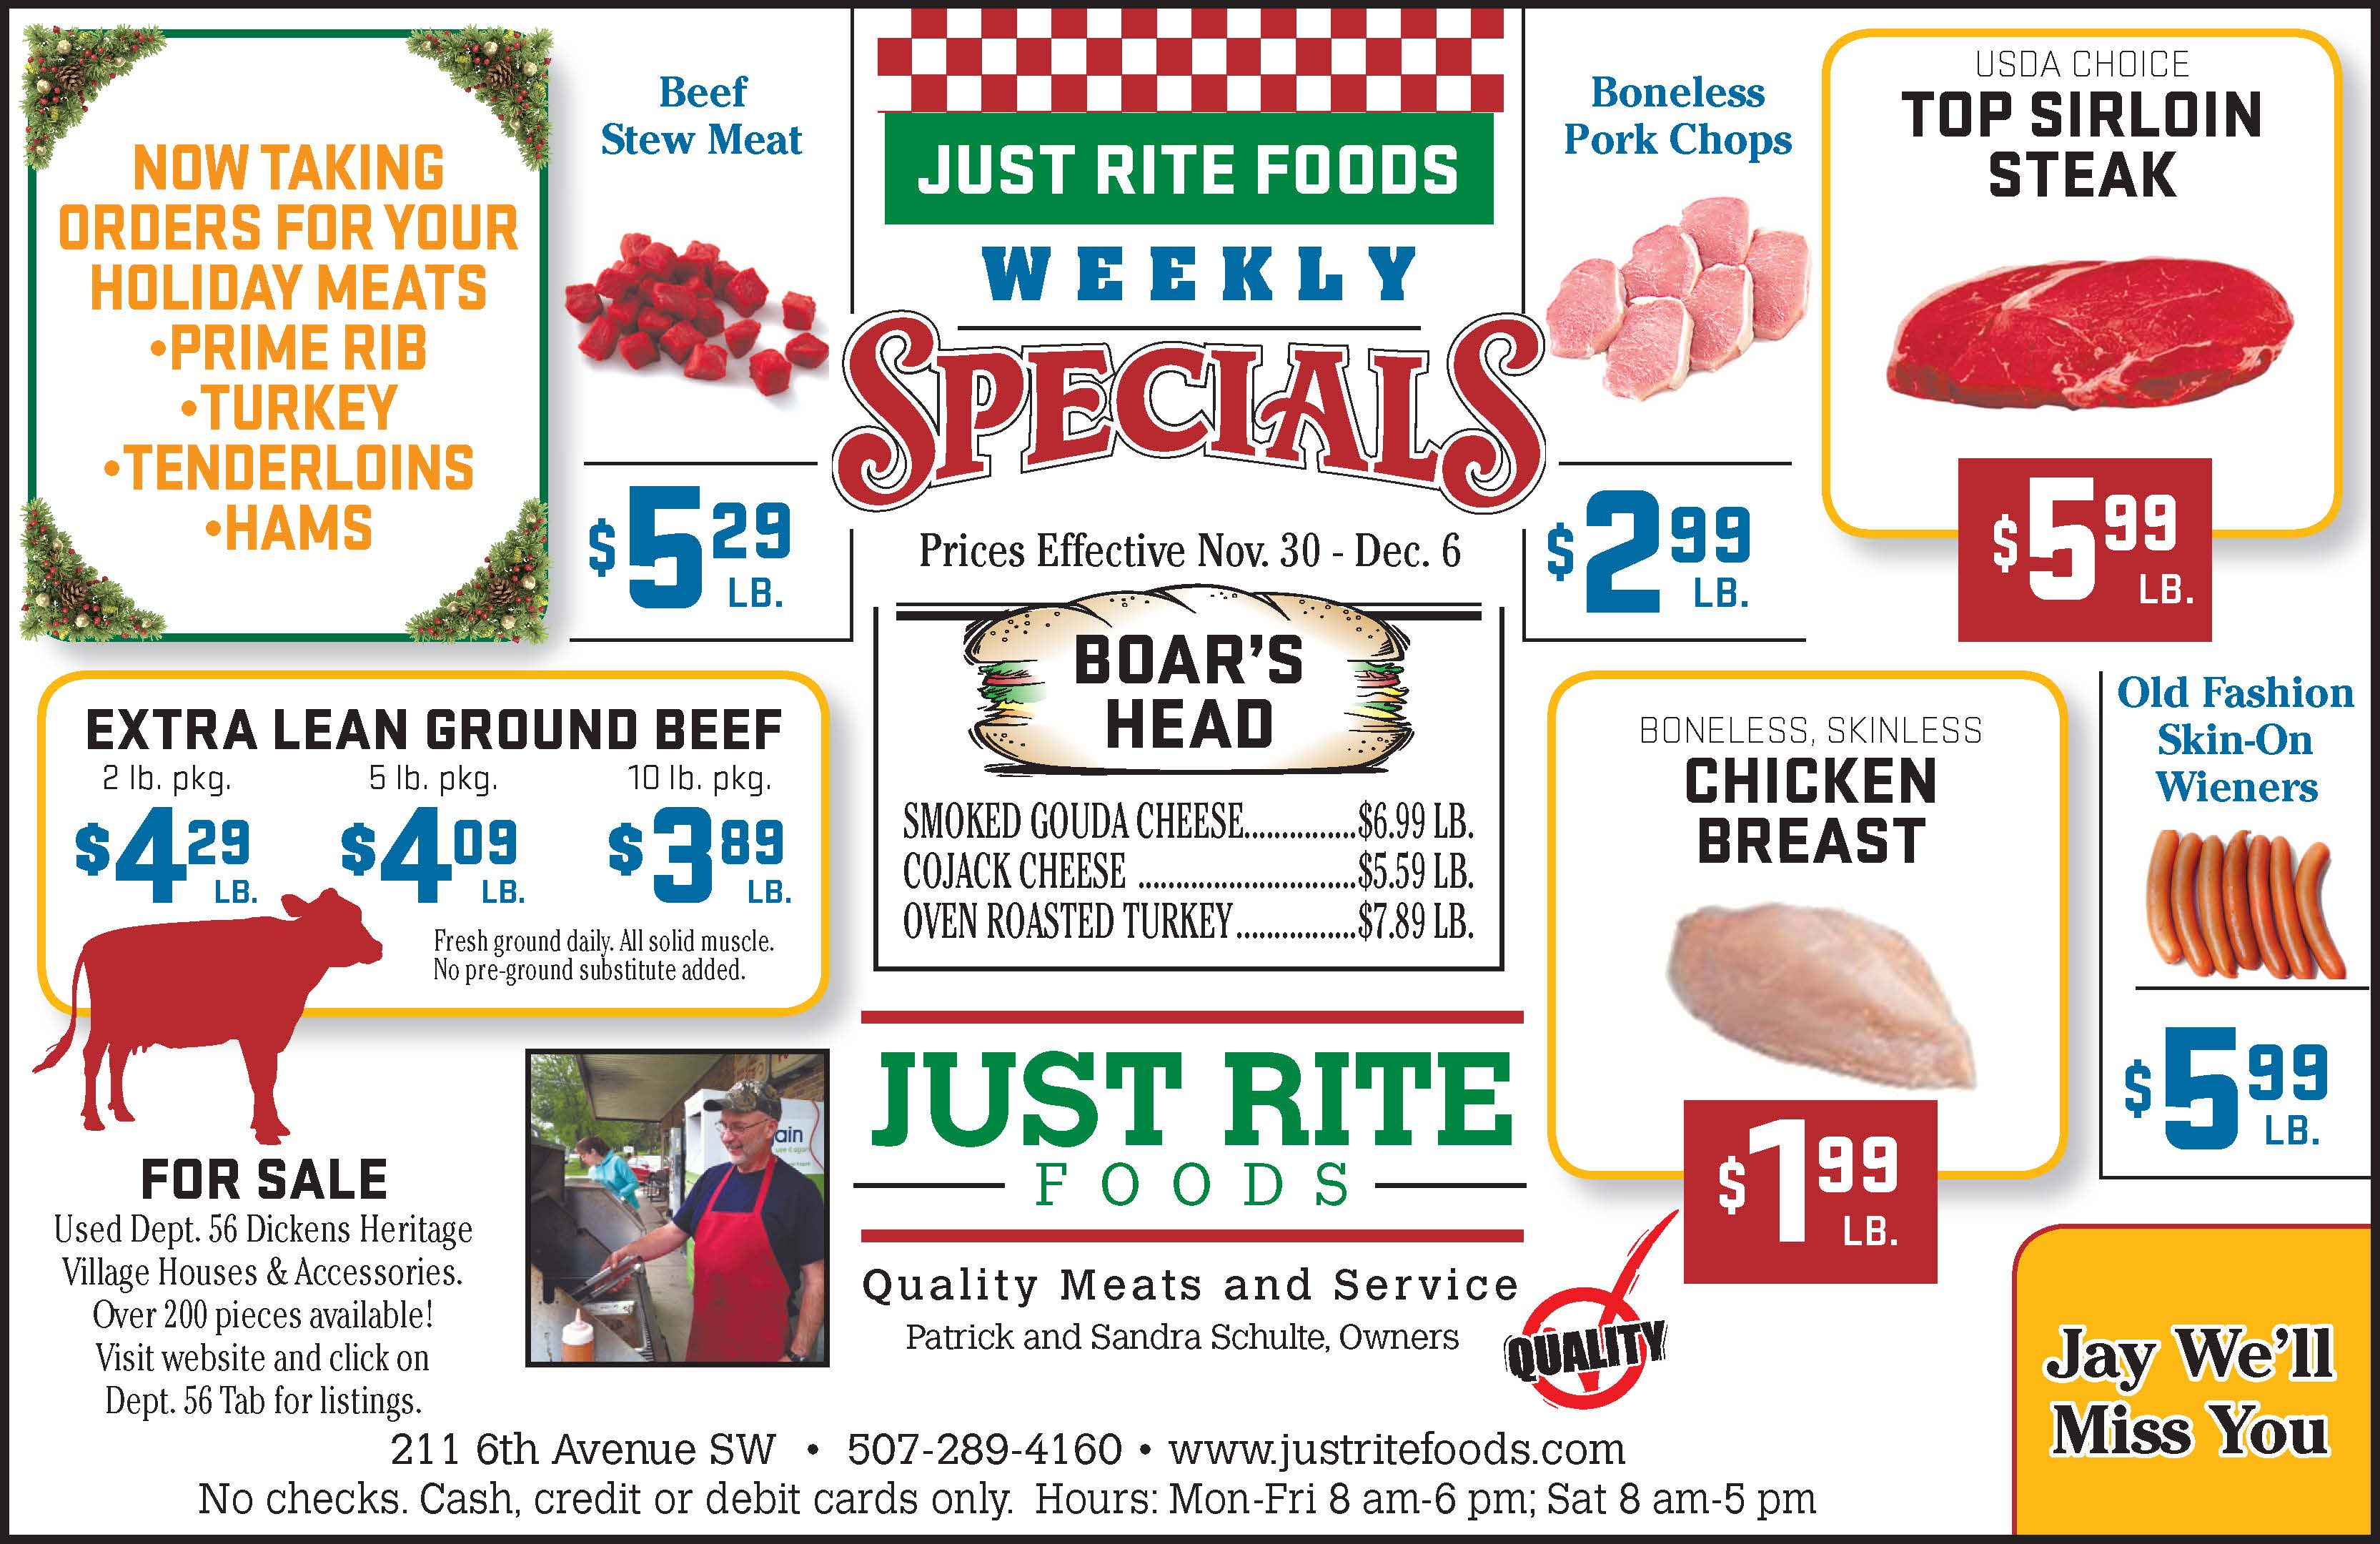 Haircut Coupons Rochester Mn Tyson Fully Cooked Chicken Breast Coupon